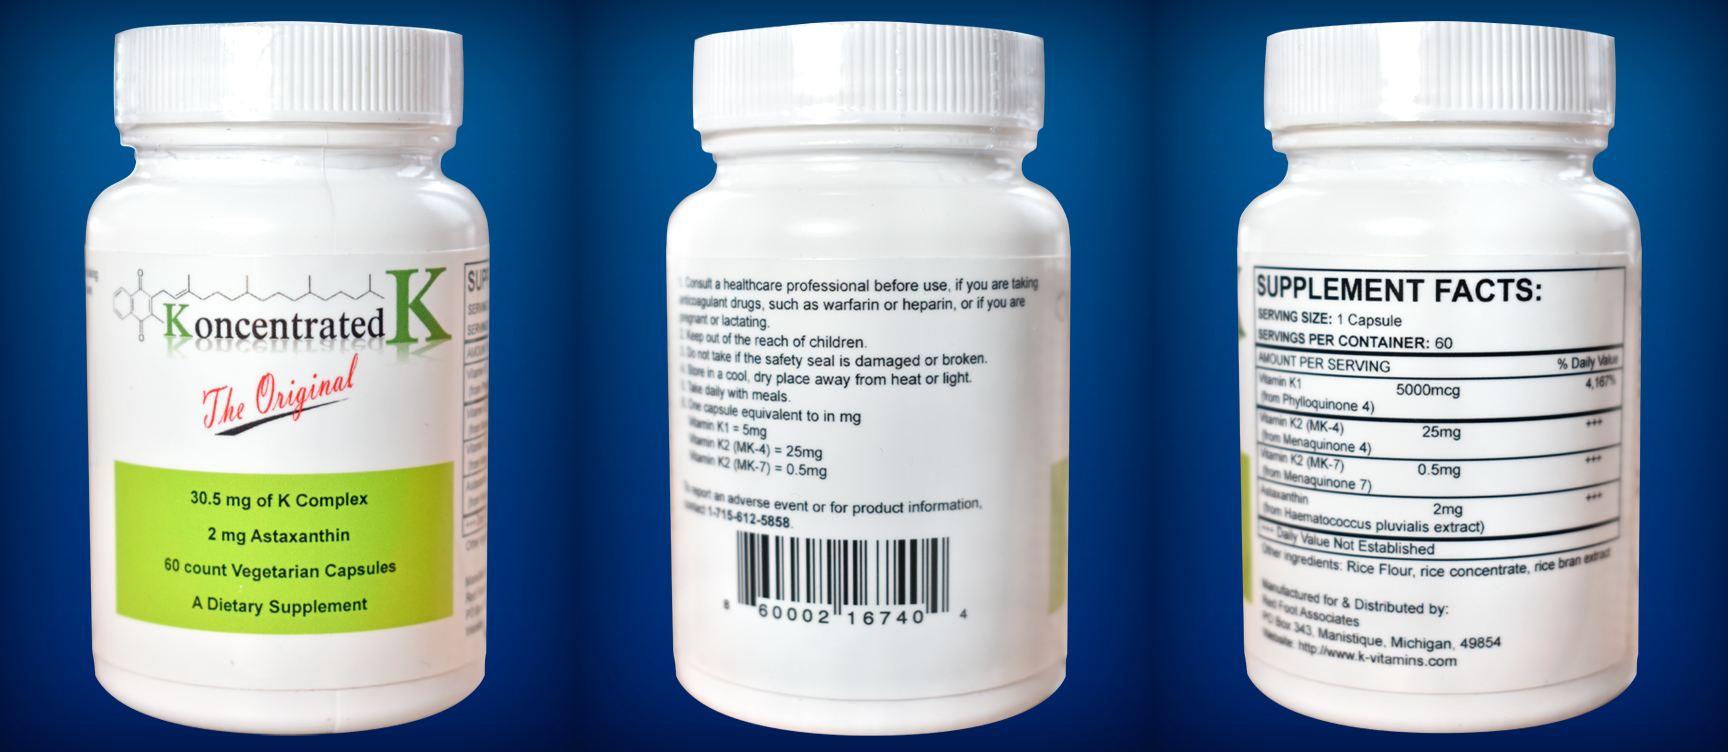 Buy Vitamin K - Koncentrated K Online Now